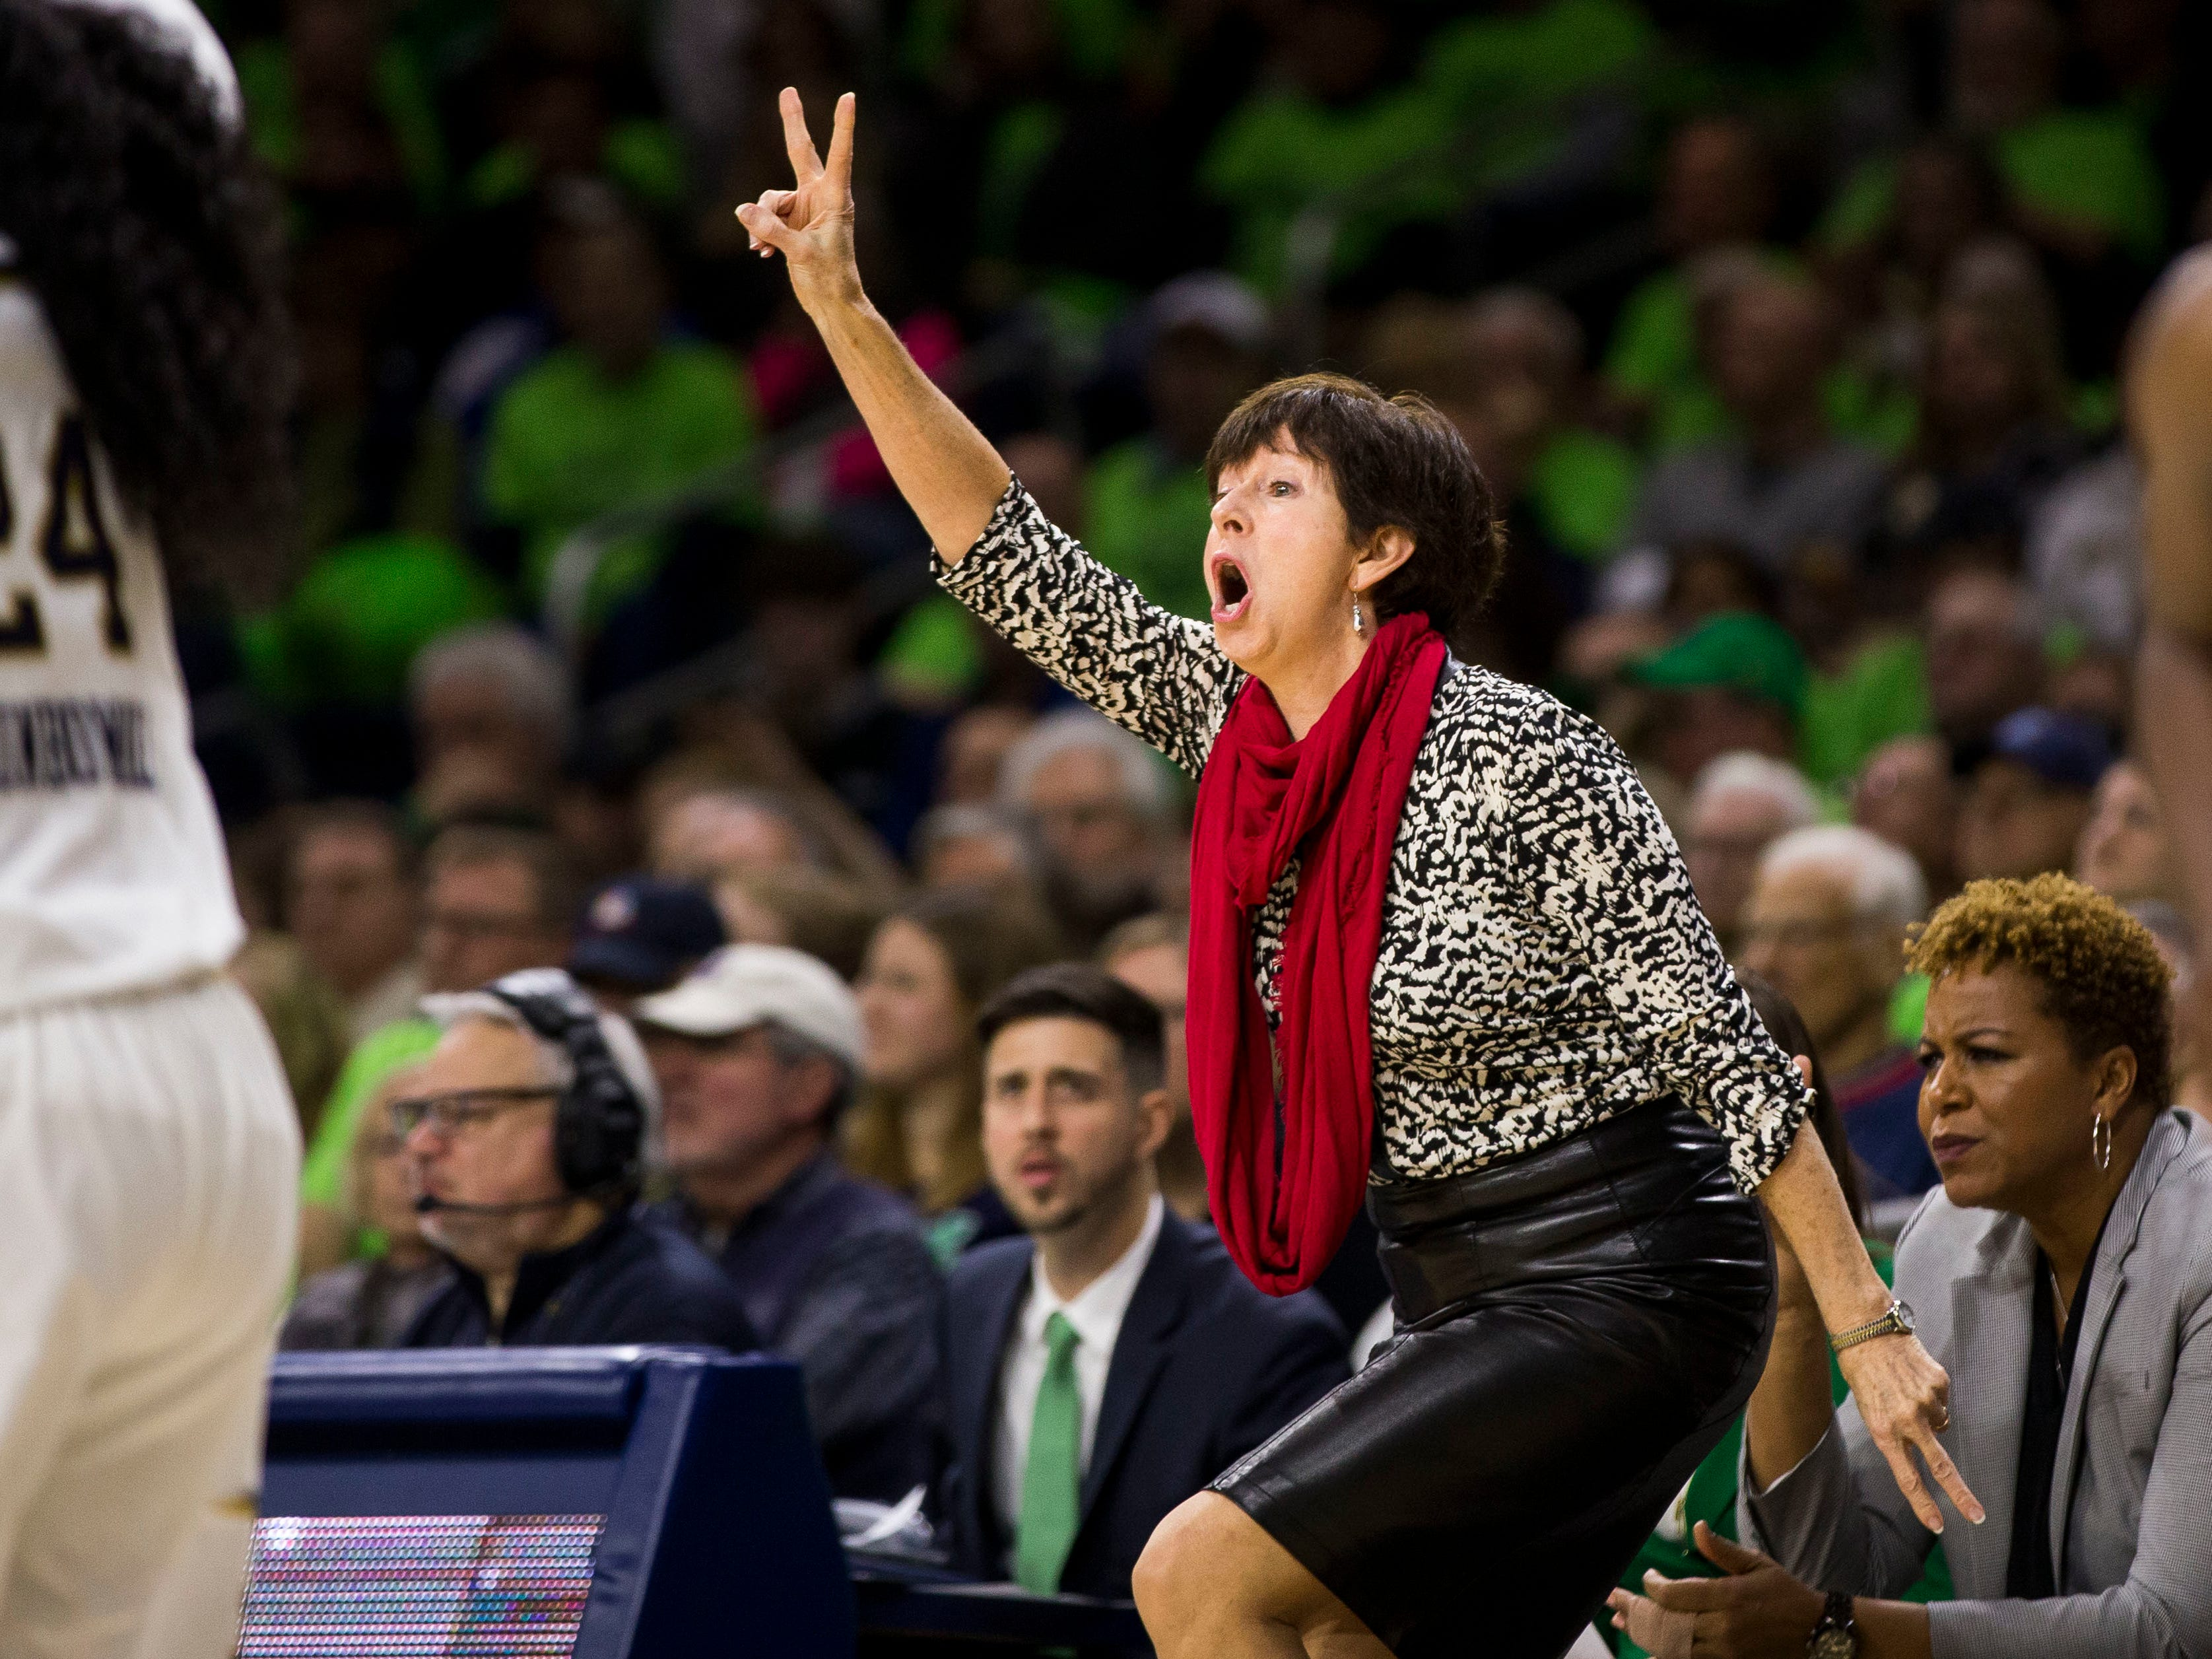 Notre Dame head coach Muffet McGraw yells a play to players during the first half of an NCAA college basketball game against Connecticut Sunday, Dec. 2, 2018, in South Bend, Ind.